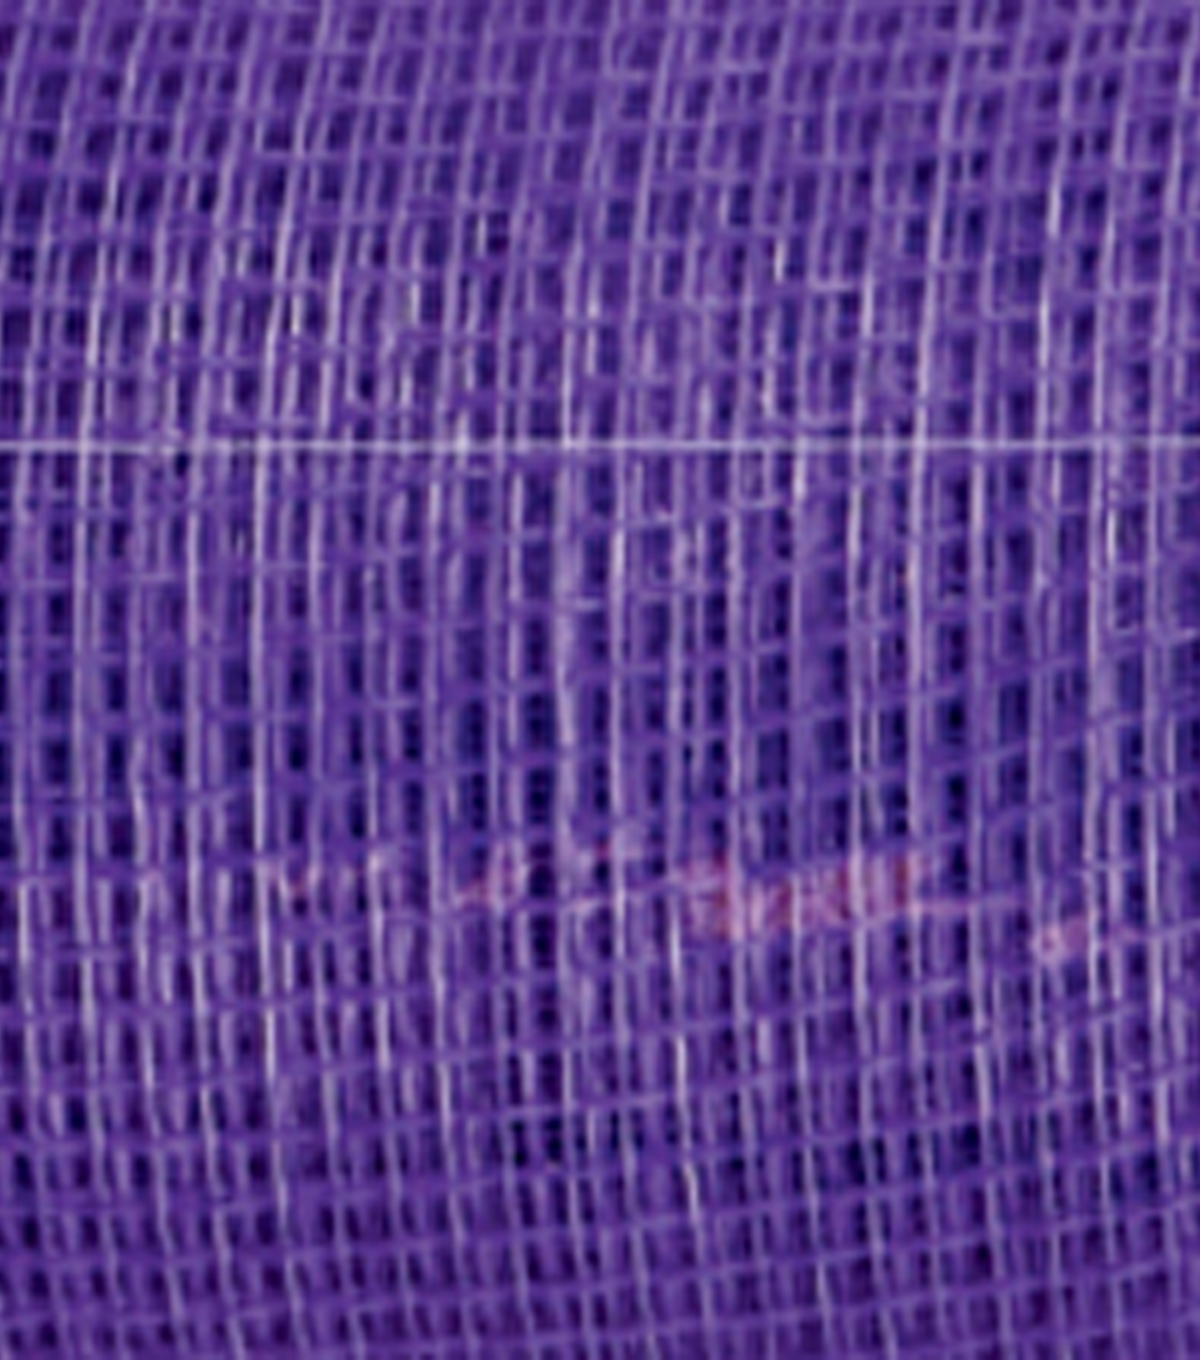 Floracraft 21\u0022x10yds Mesh Metallic Ribbon, Purple